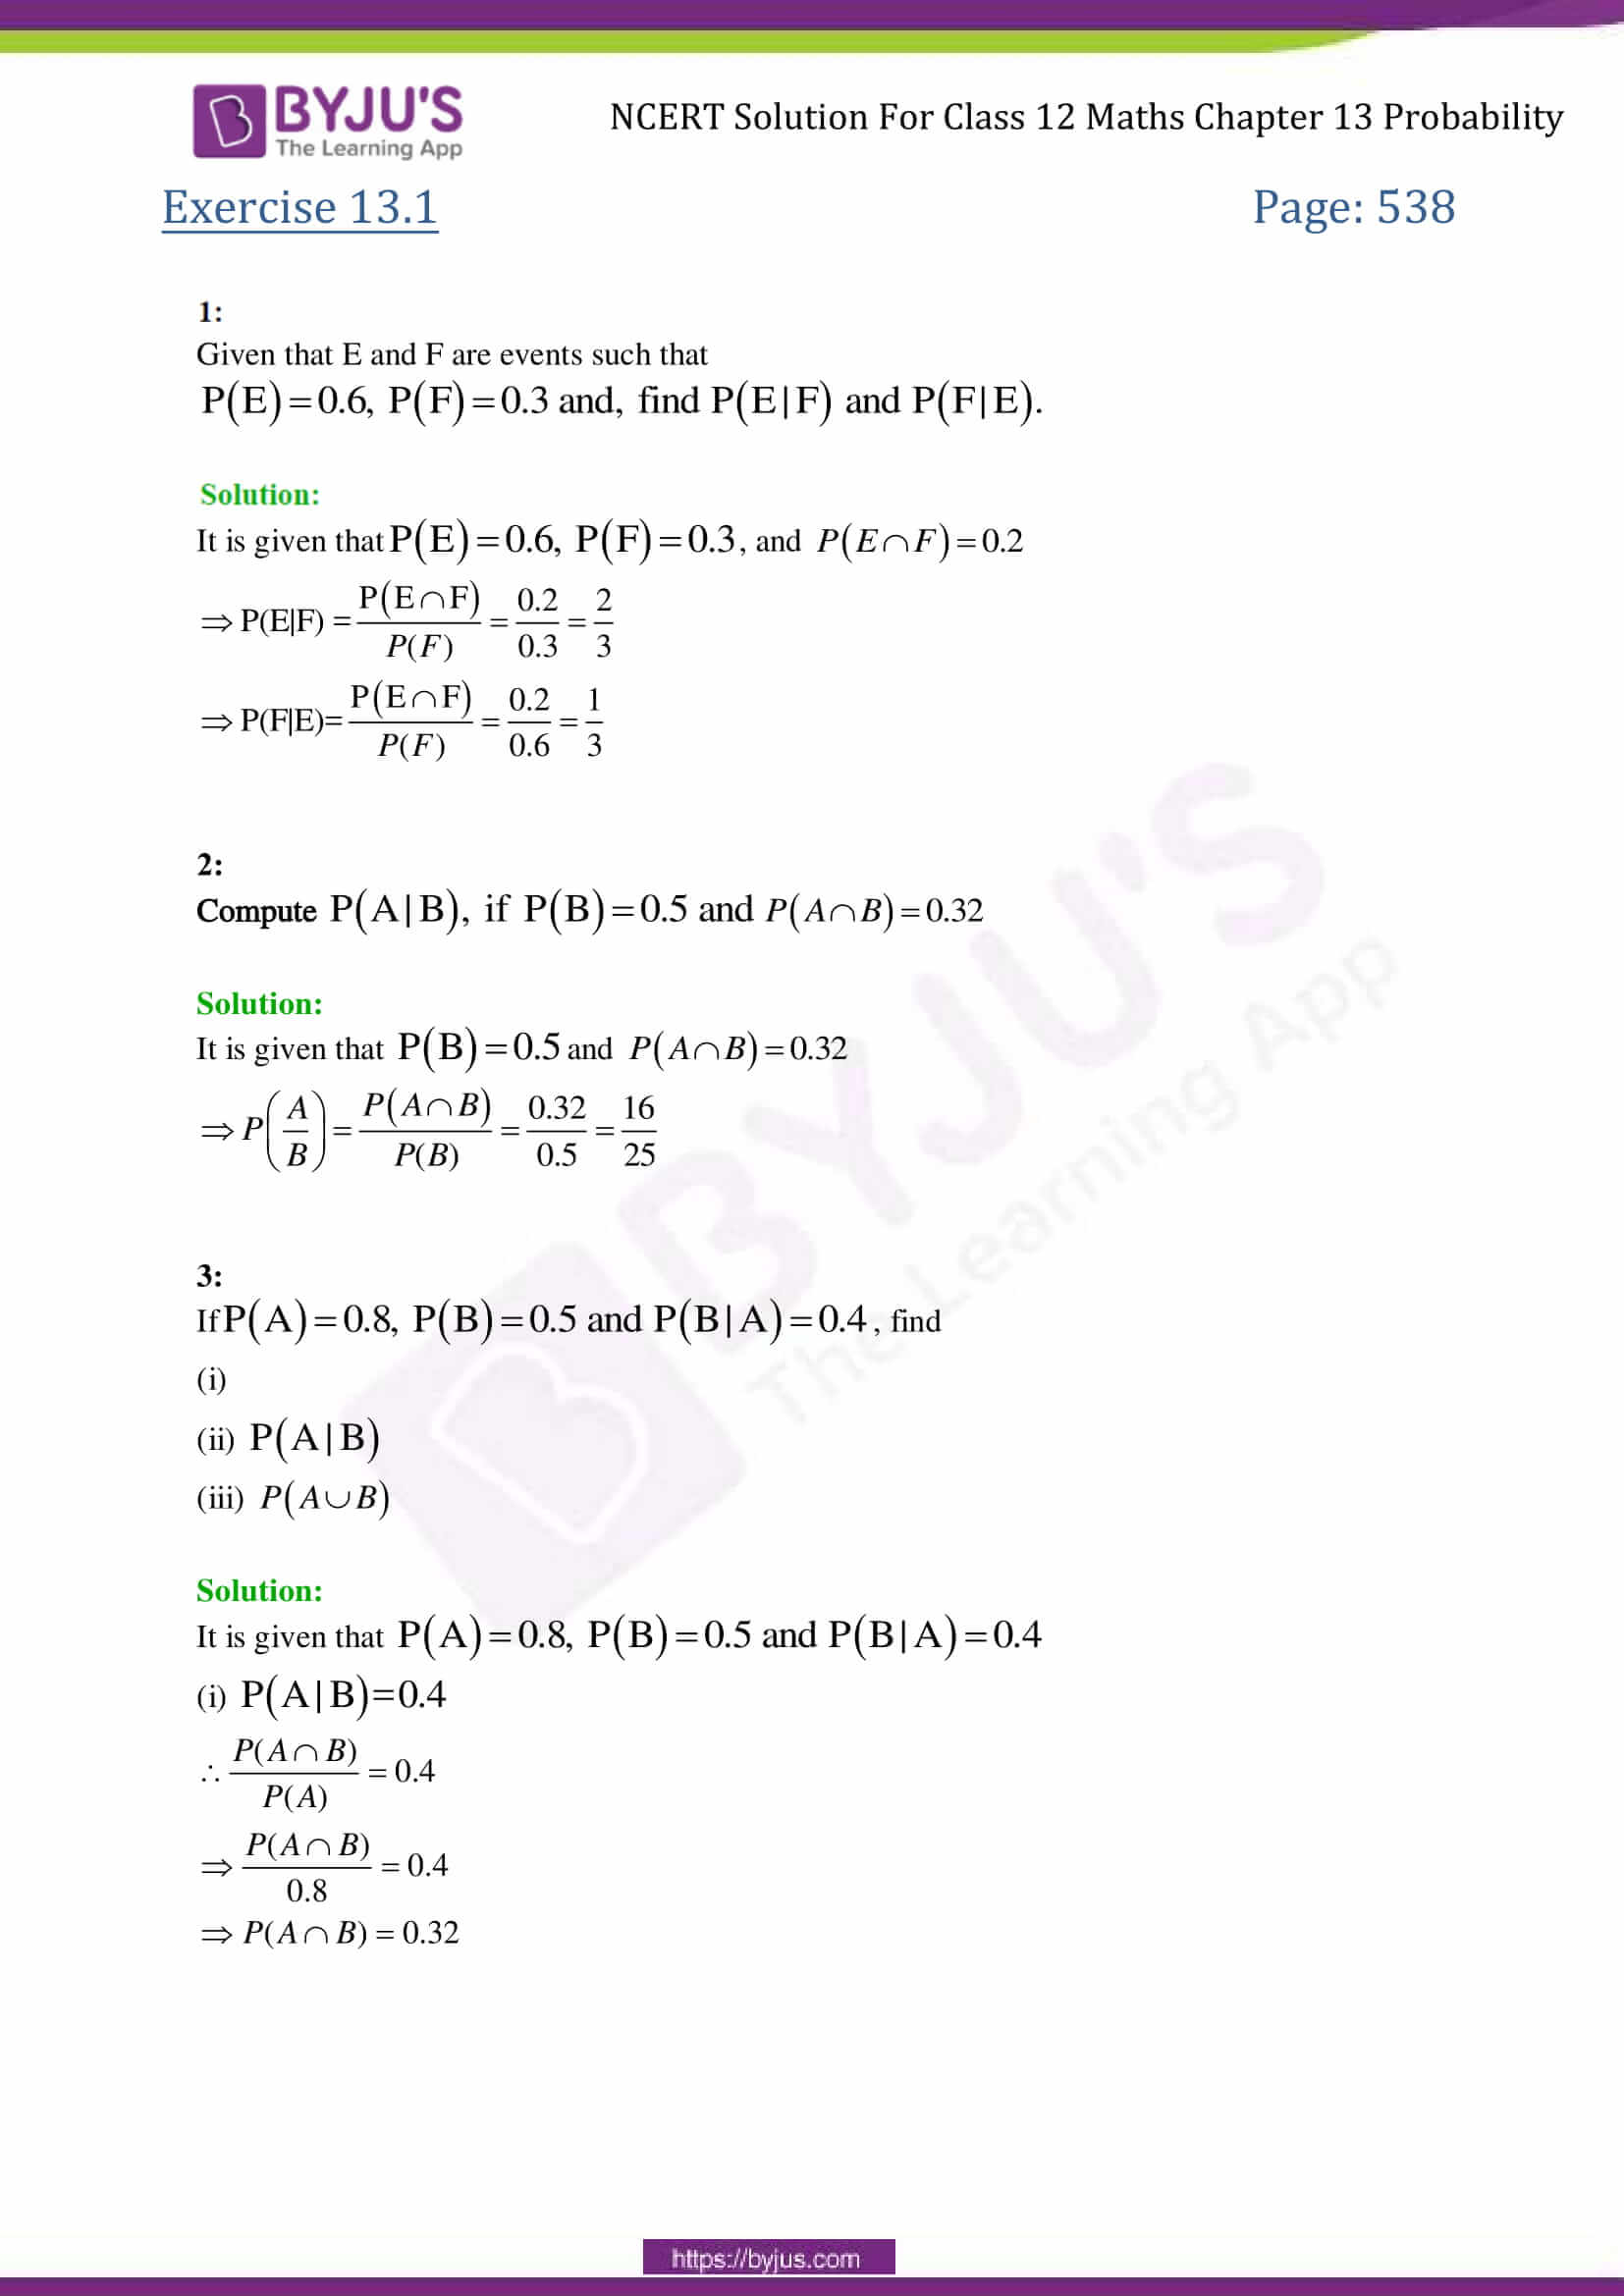 NCERT Solutions Class 12 Maths Chapter 13 Probability Free